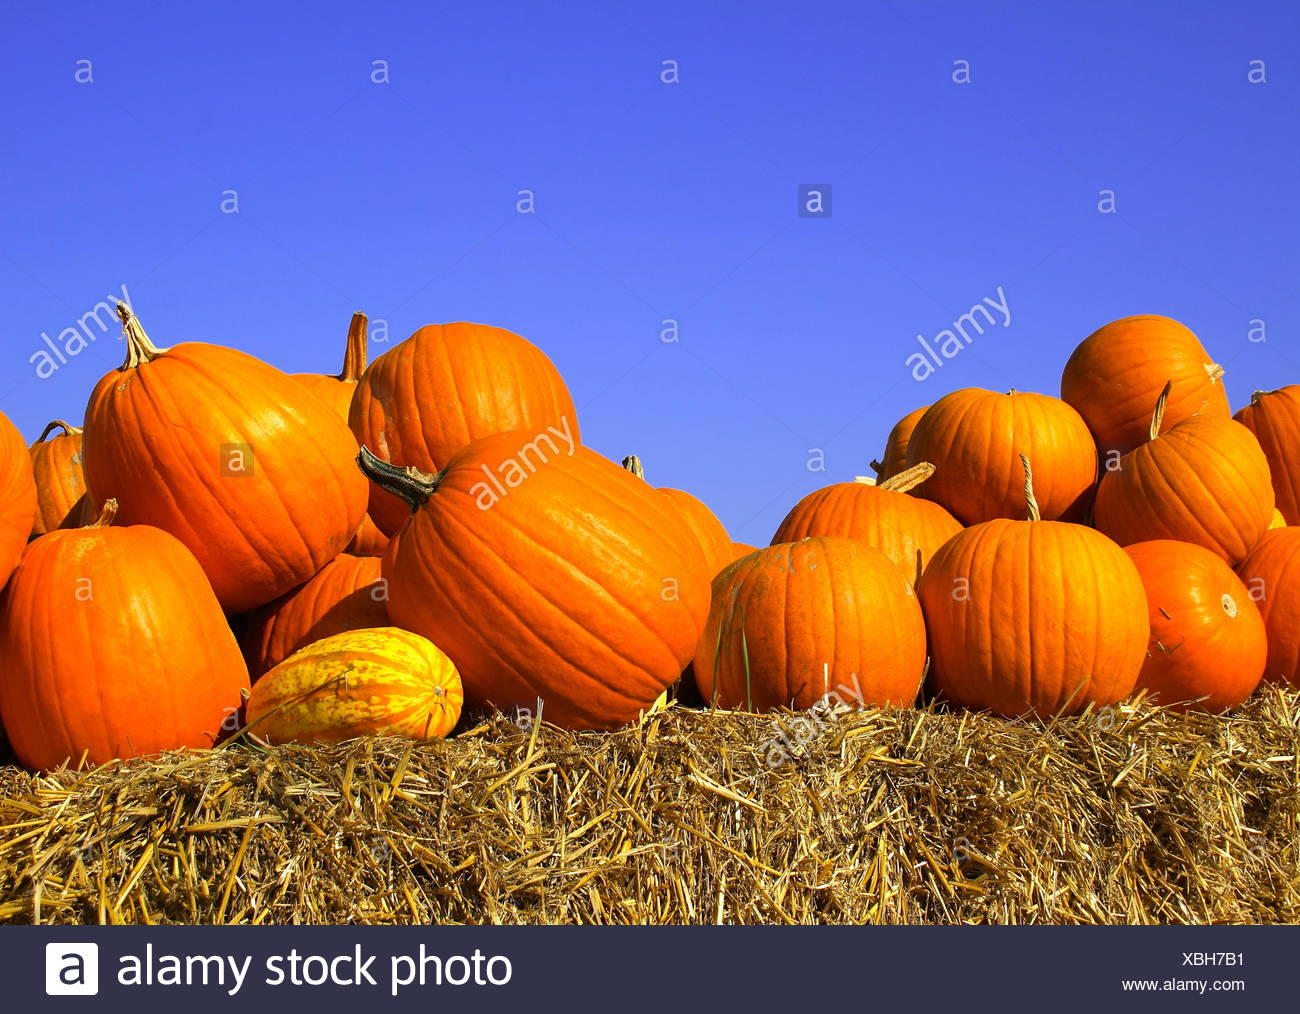 Pumpkins on bales of straw (hay) - Stock Image